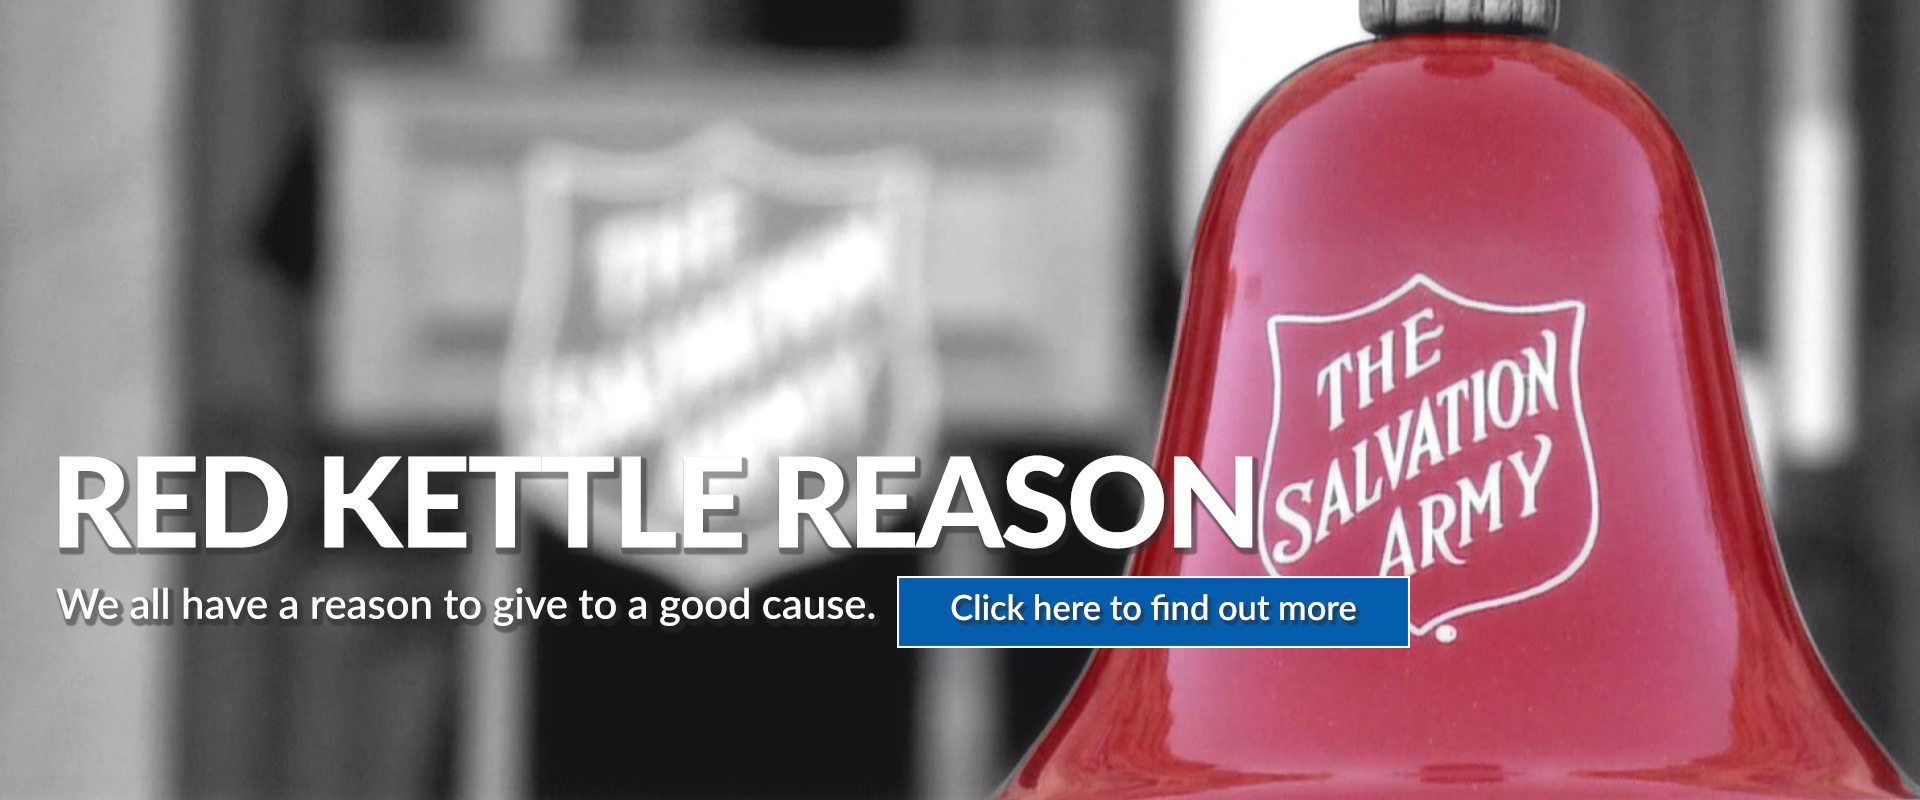 91.3 KGLY East Texas Chrsitian Radio The Salvation Army Red Kettle Reason